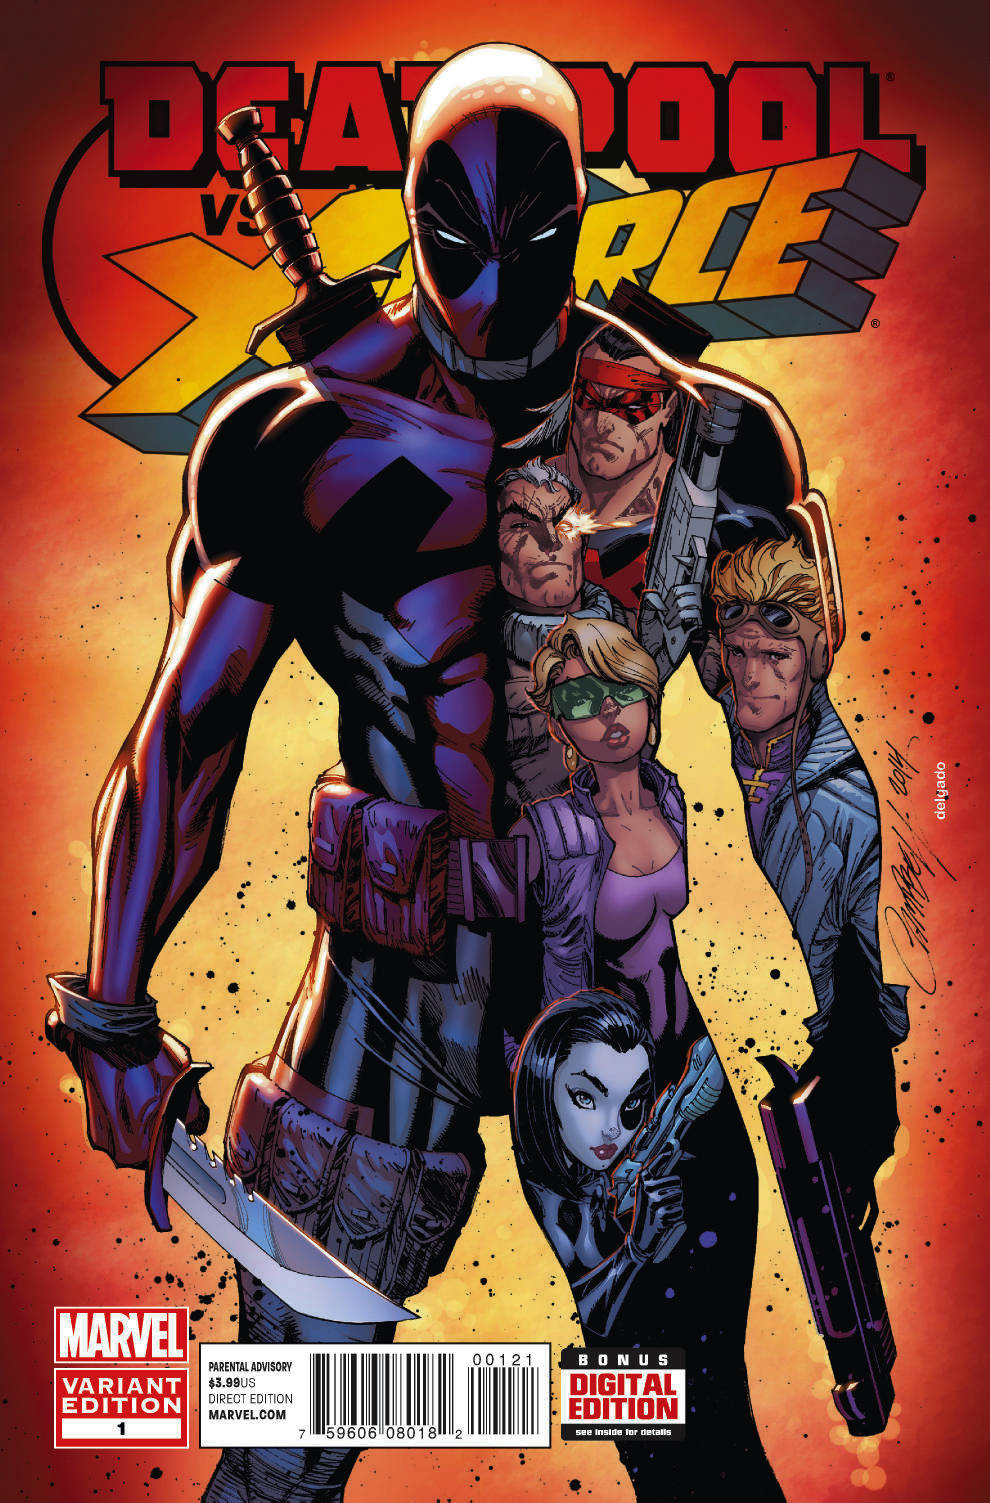 DEADPOOL VS X-FORCE #1